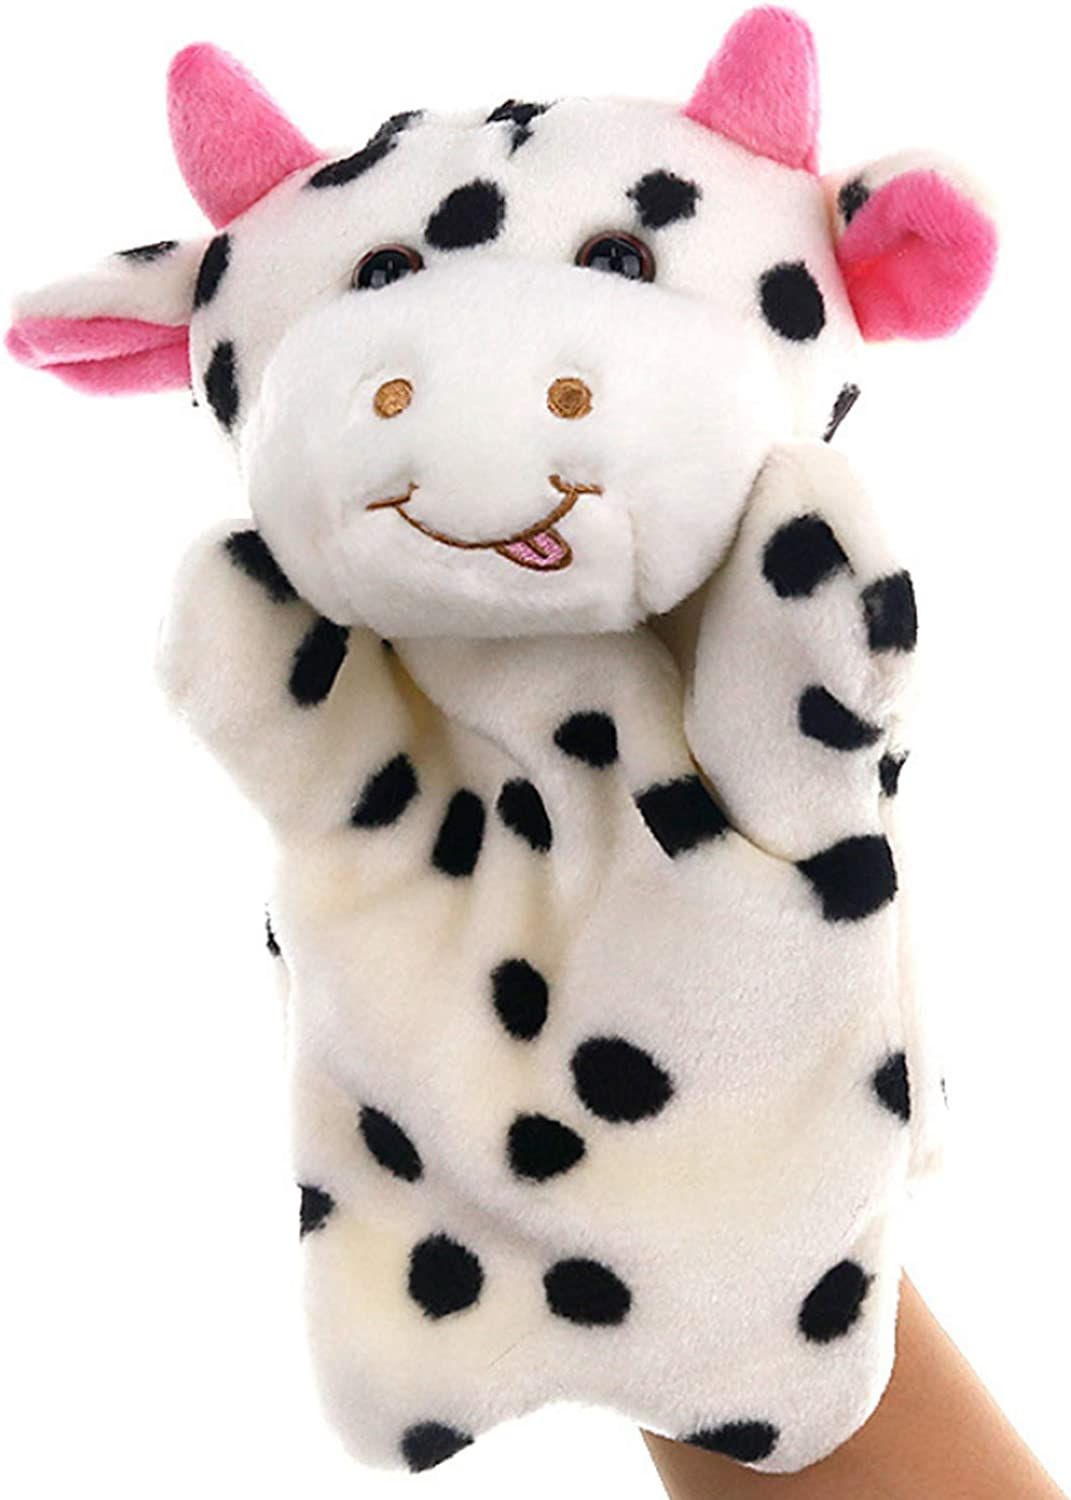 SweetGifts Milk Cow Hand Puppets Plush Animal Toys for Imaginative Pretend Play Stocking Storytelling